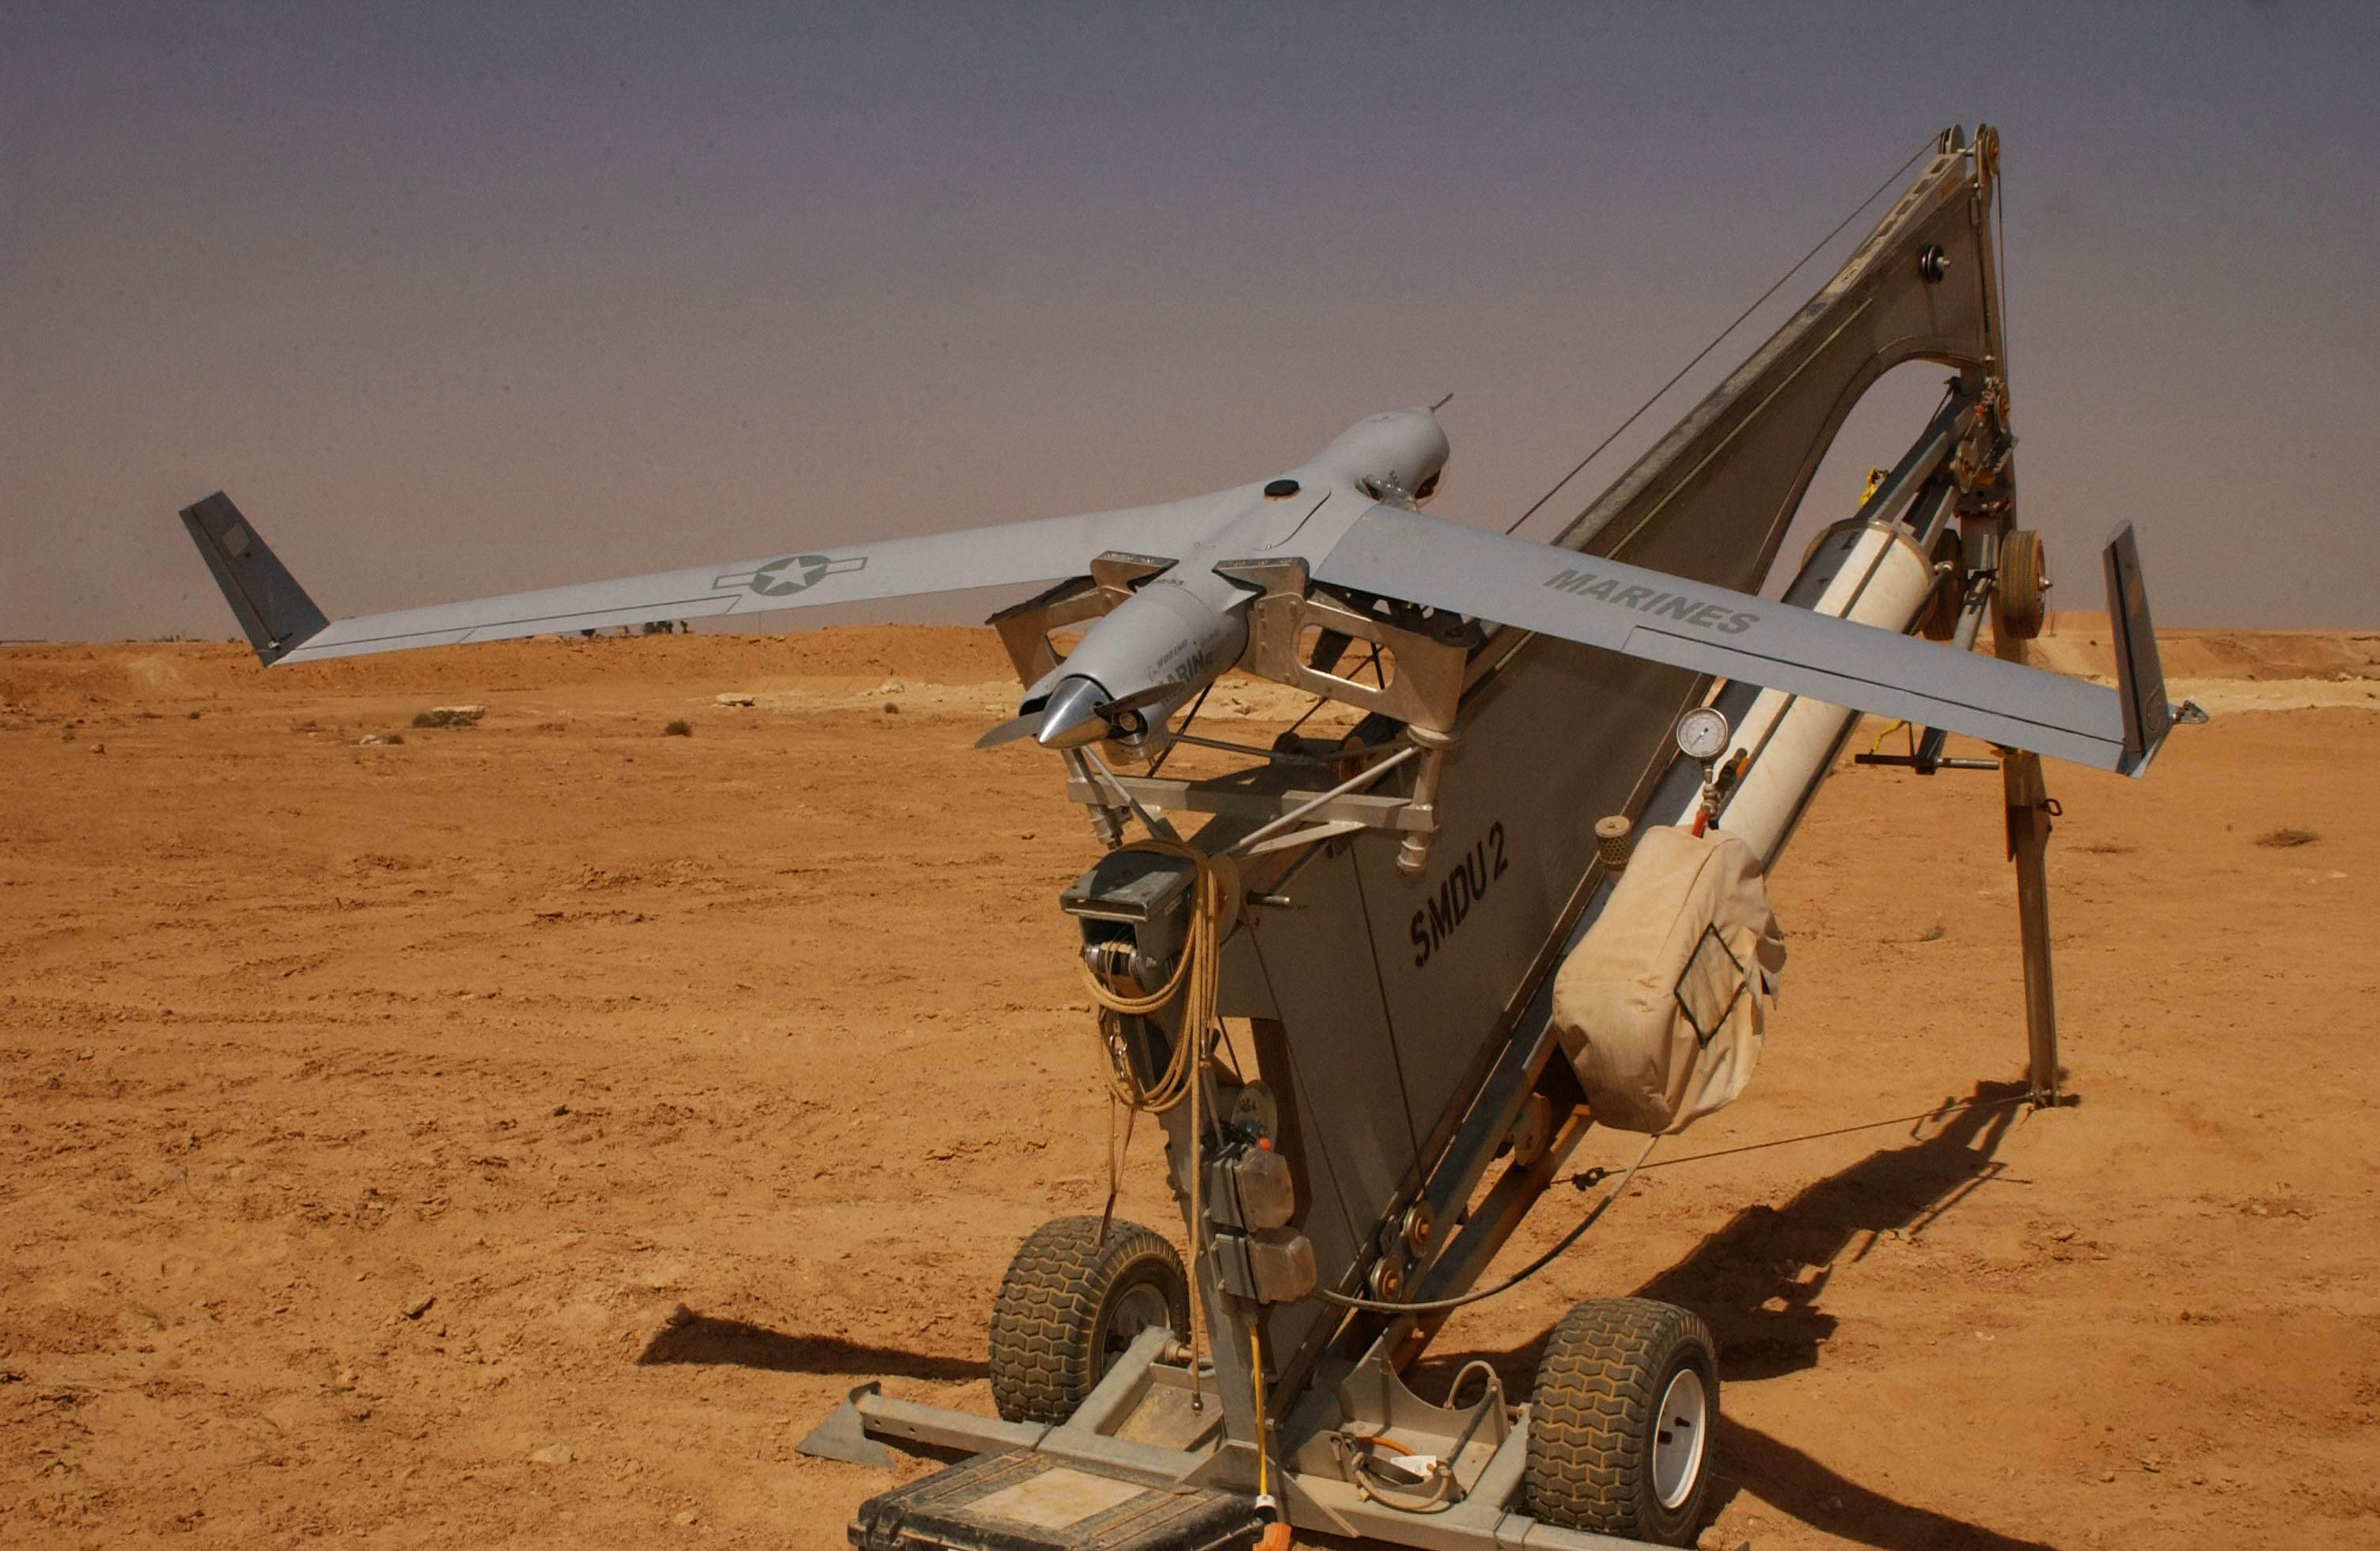 Filescaneagle Uav Catapult Launcher 2005 04 16 Wikimedia Commons Diagram